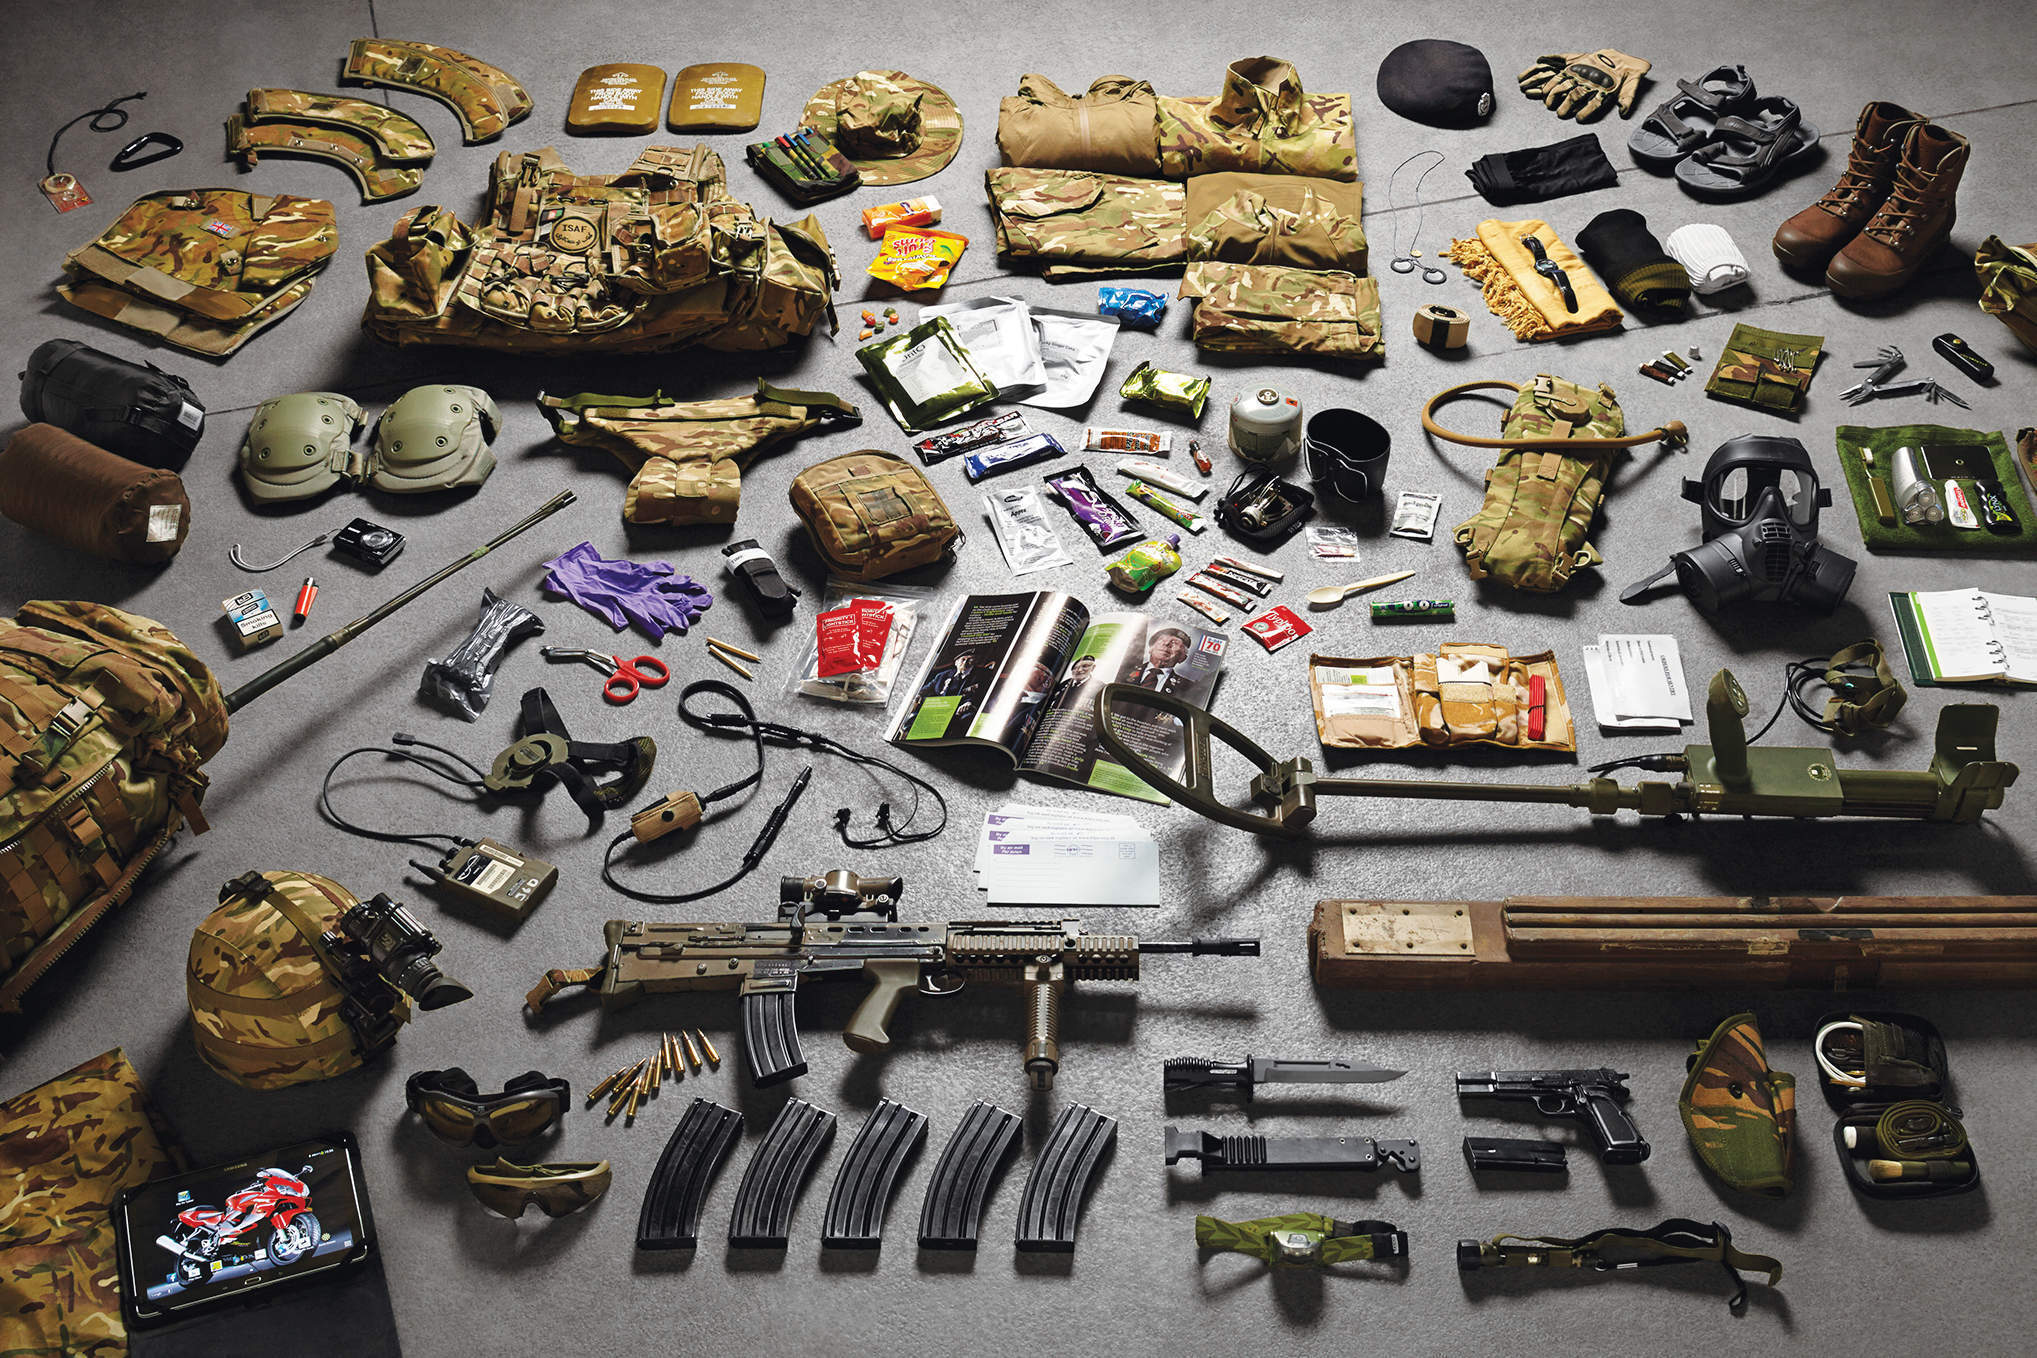 From a bullet to a drone, Anatomy of a Soldier tells the story of a wounded captain through the objects around him